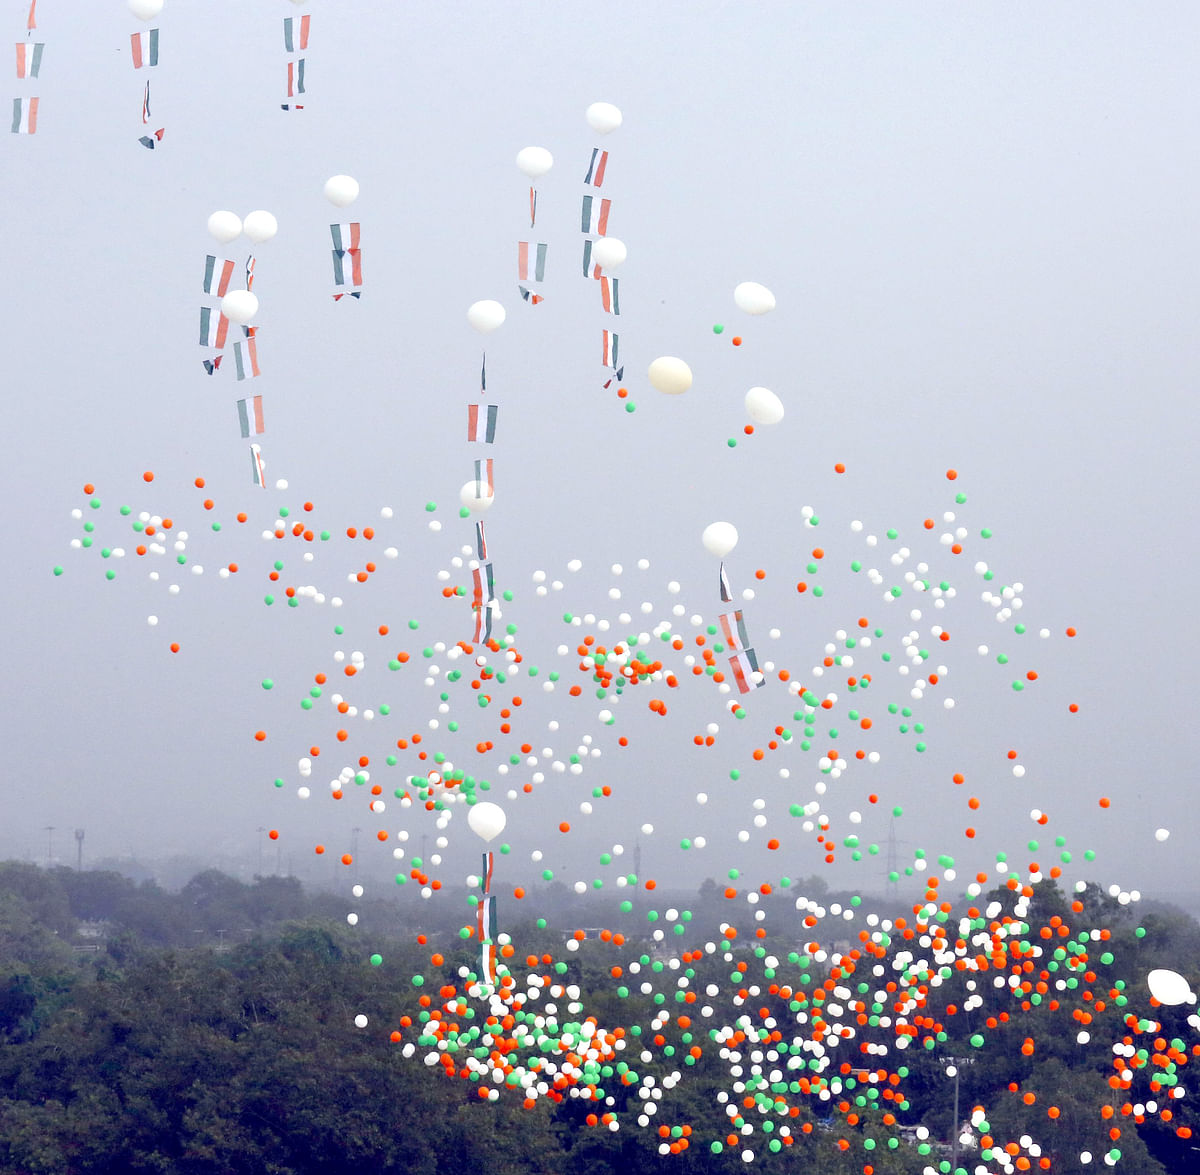 Colourful balloons released at the end of the Independence Day Ceremony at the Red Fort in New Delhi on August 15, 2020.